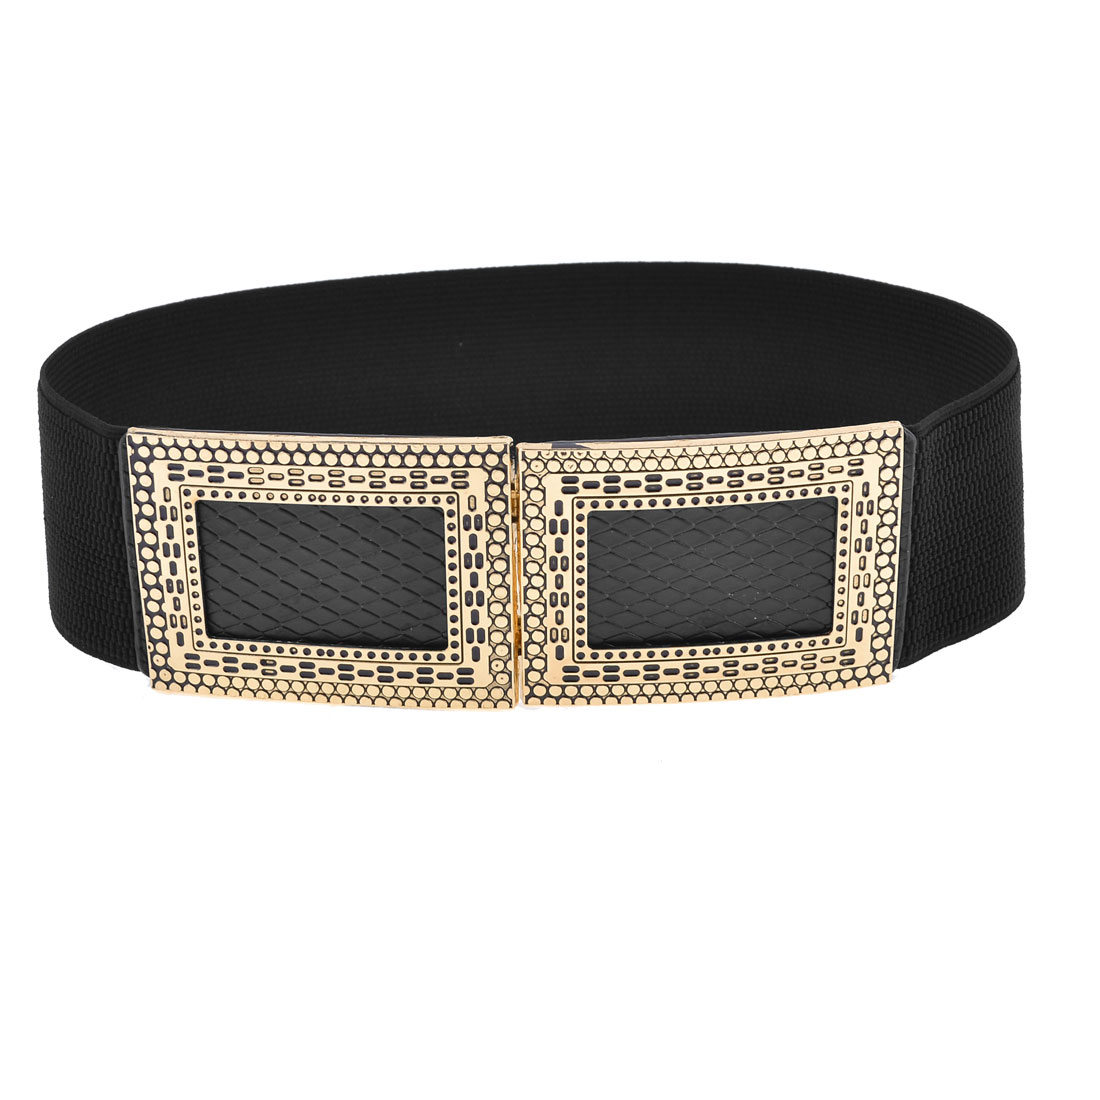 Black Snake Pattern Retangle Metal Interlocking Buckle Belt for Women